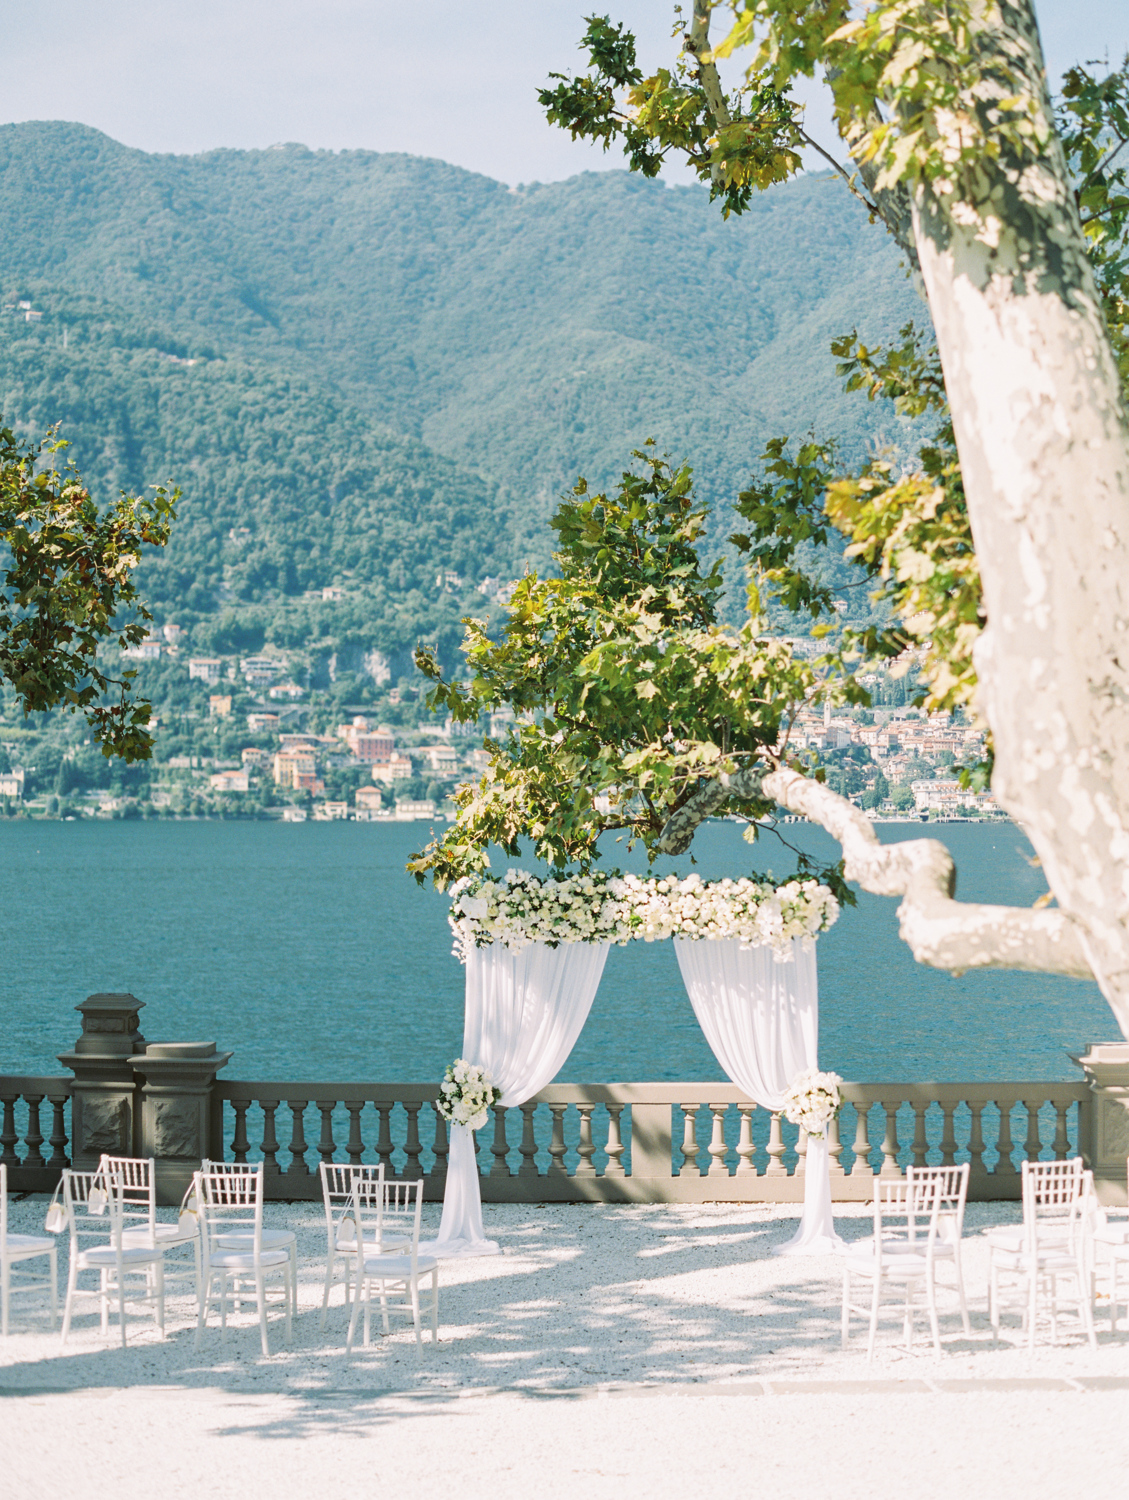 Wedding ceremony place castadiva lake Como view